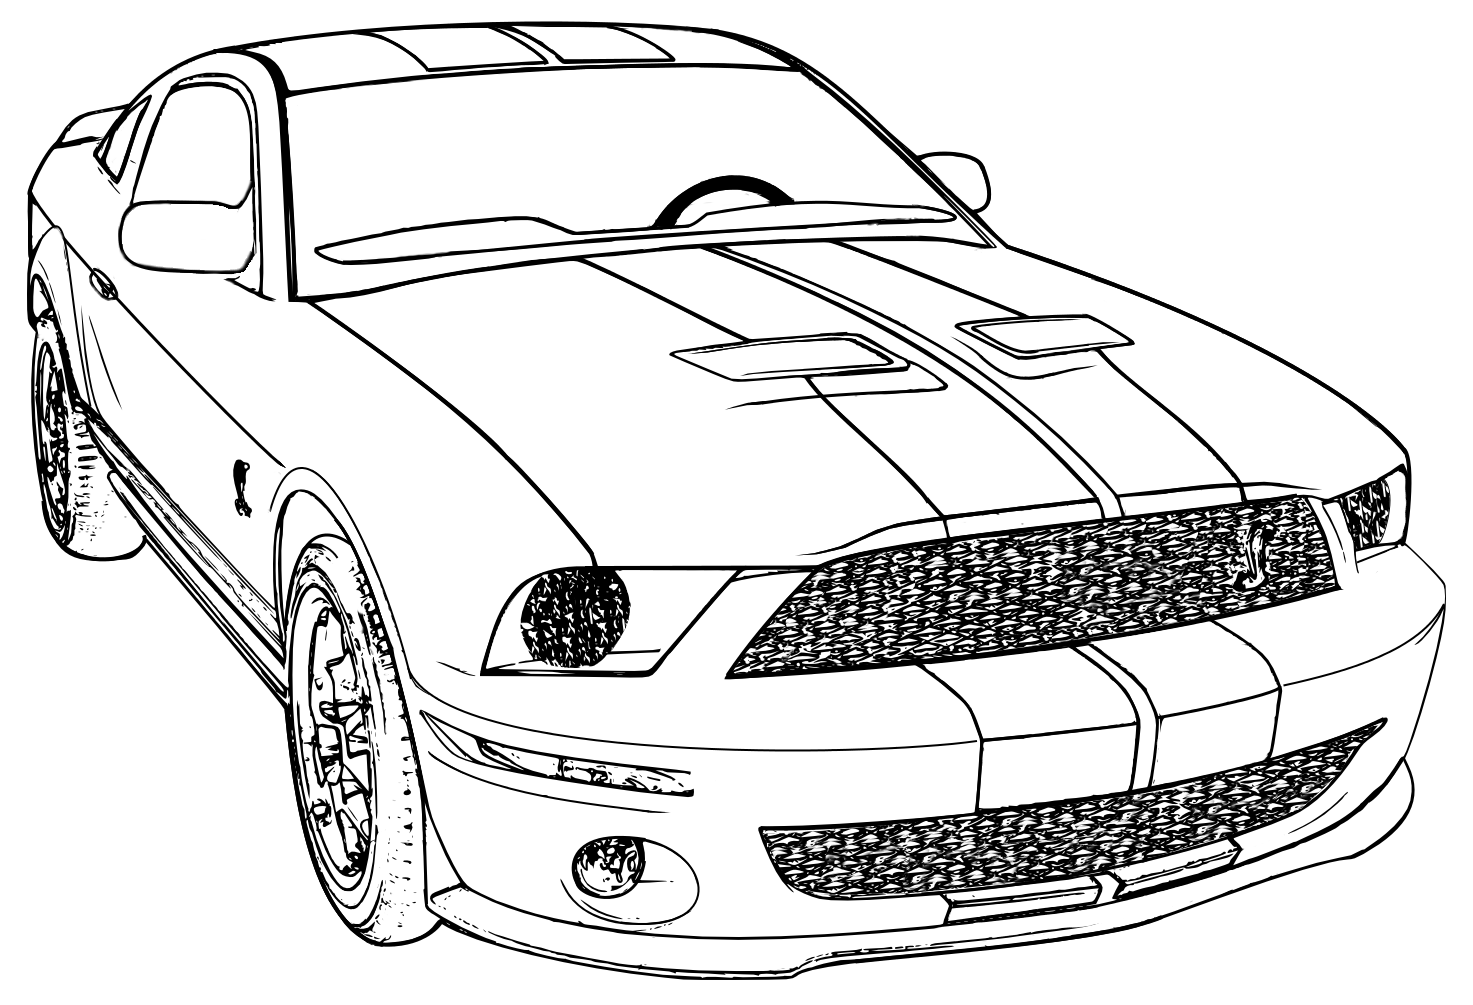 car coloring pages printable for free race car coloring pages printable free 5 image car for printable free pages coloring